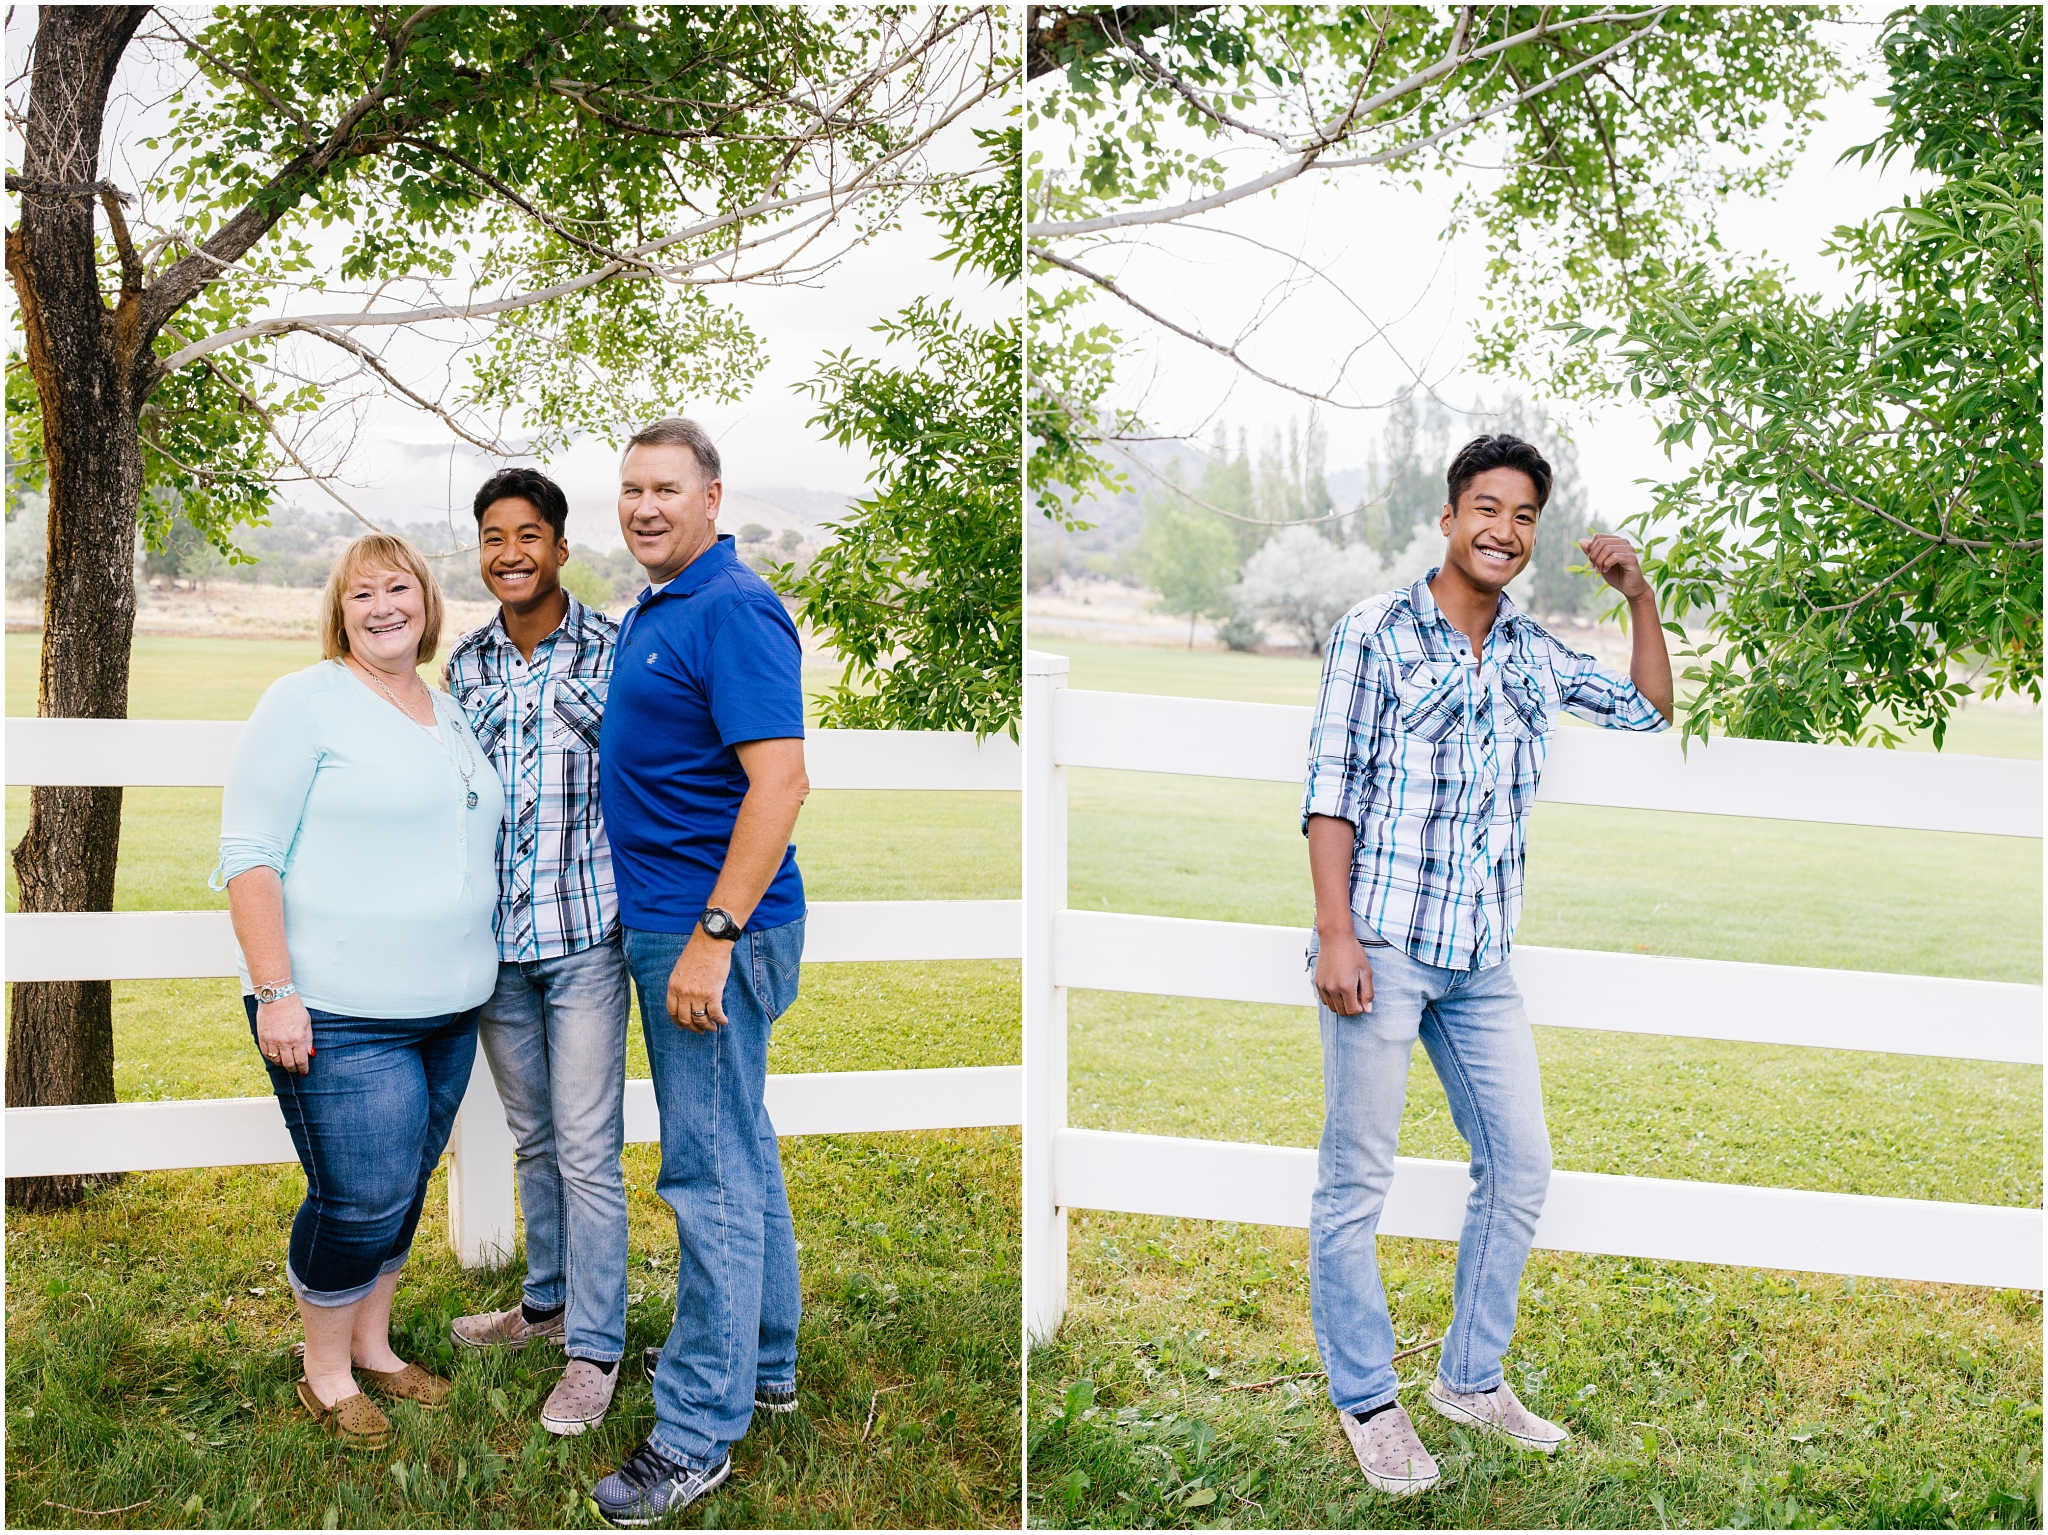 Brinkerhoff-20_Lizzie-B-Imagery-Utah-Family-Photographer-Central-Utah-Photographer-Utah-County-Extended-Family-Session.jpg